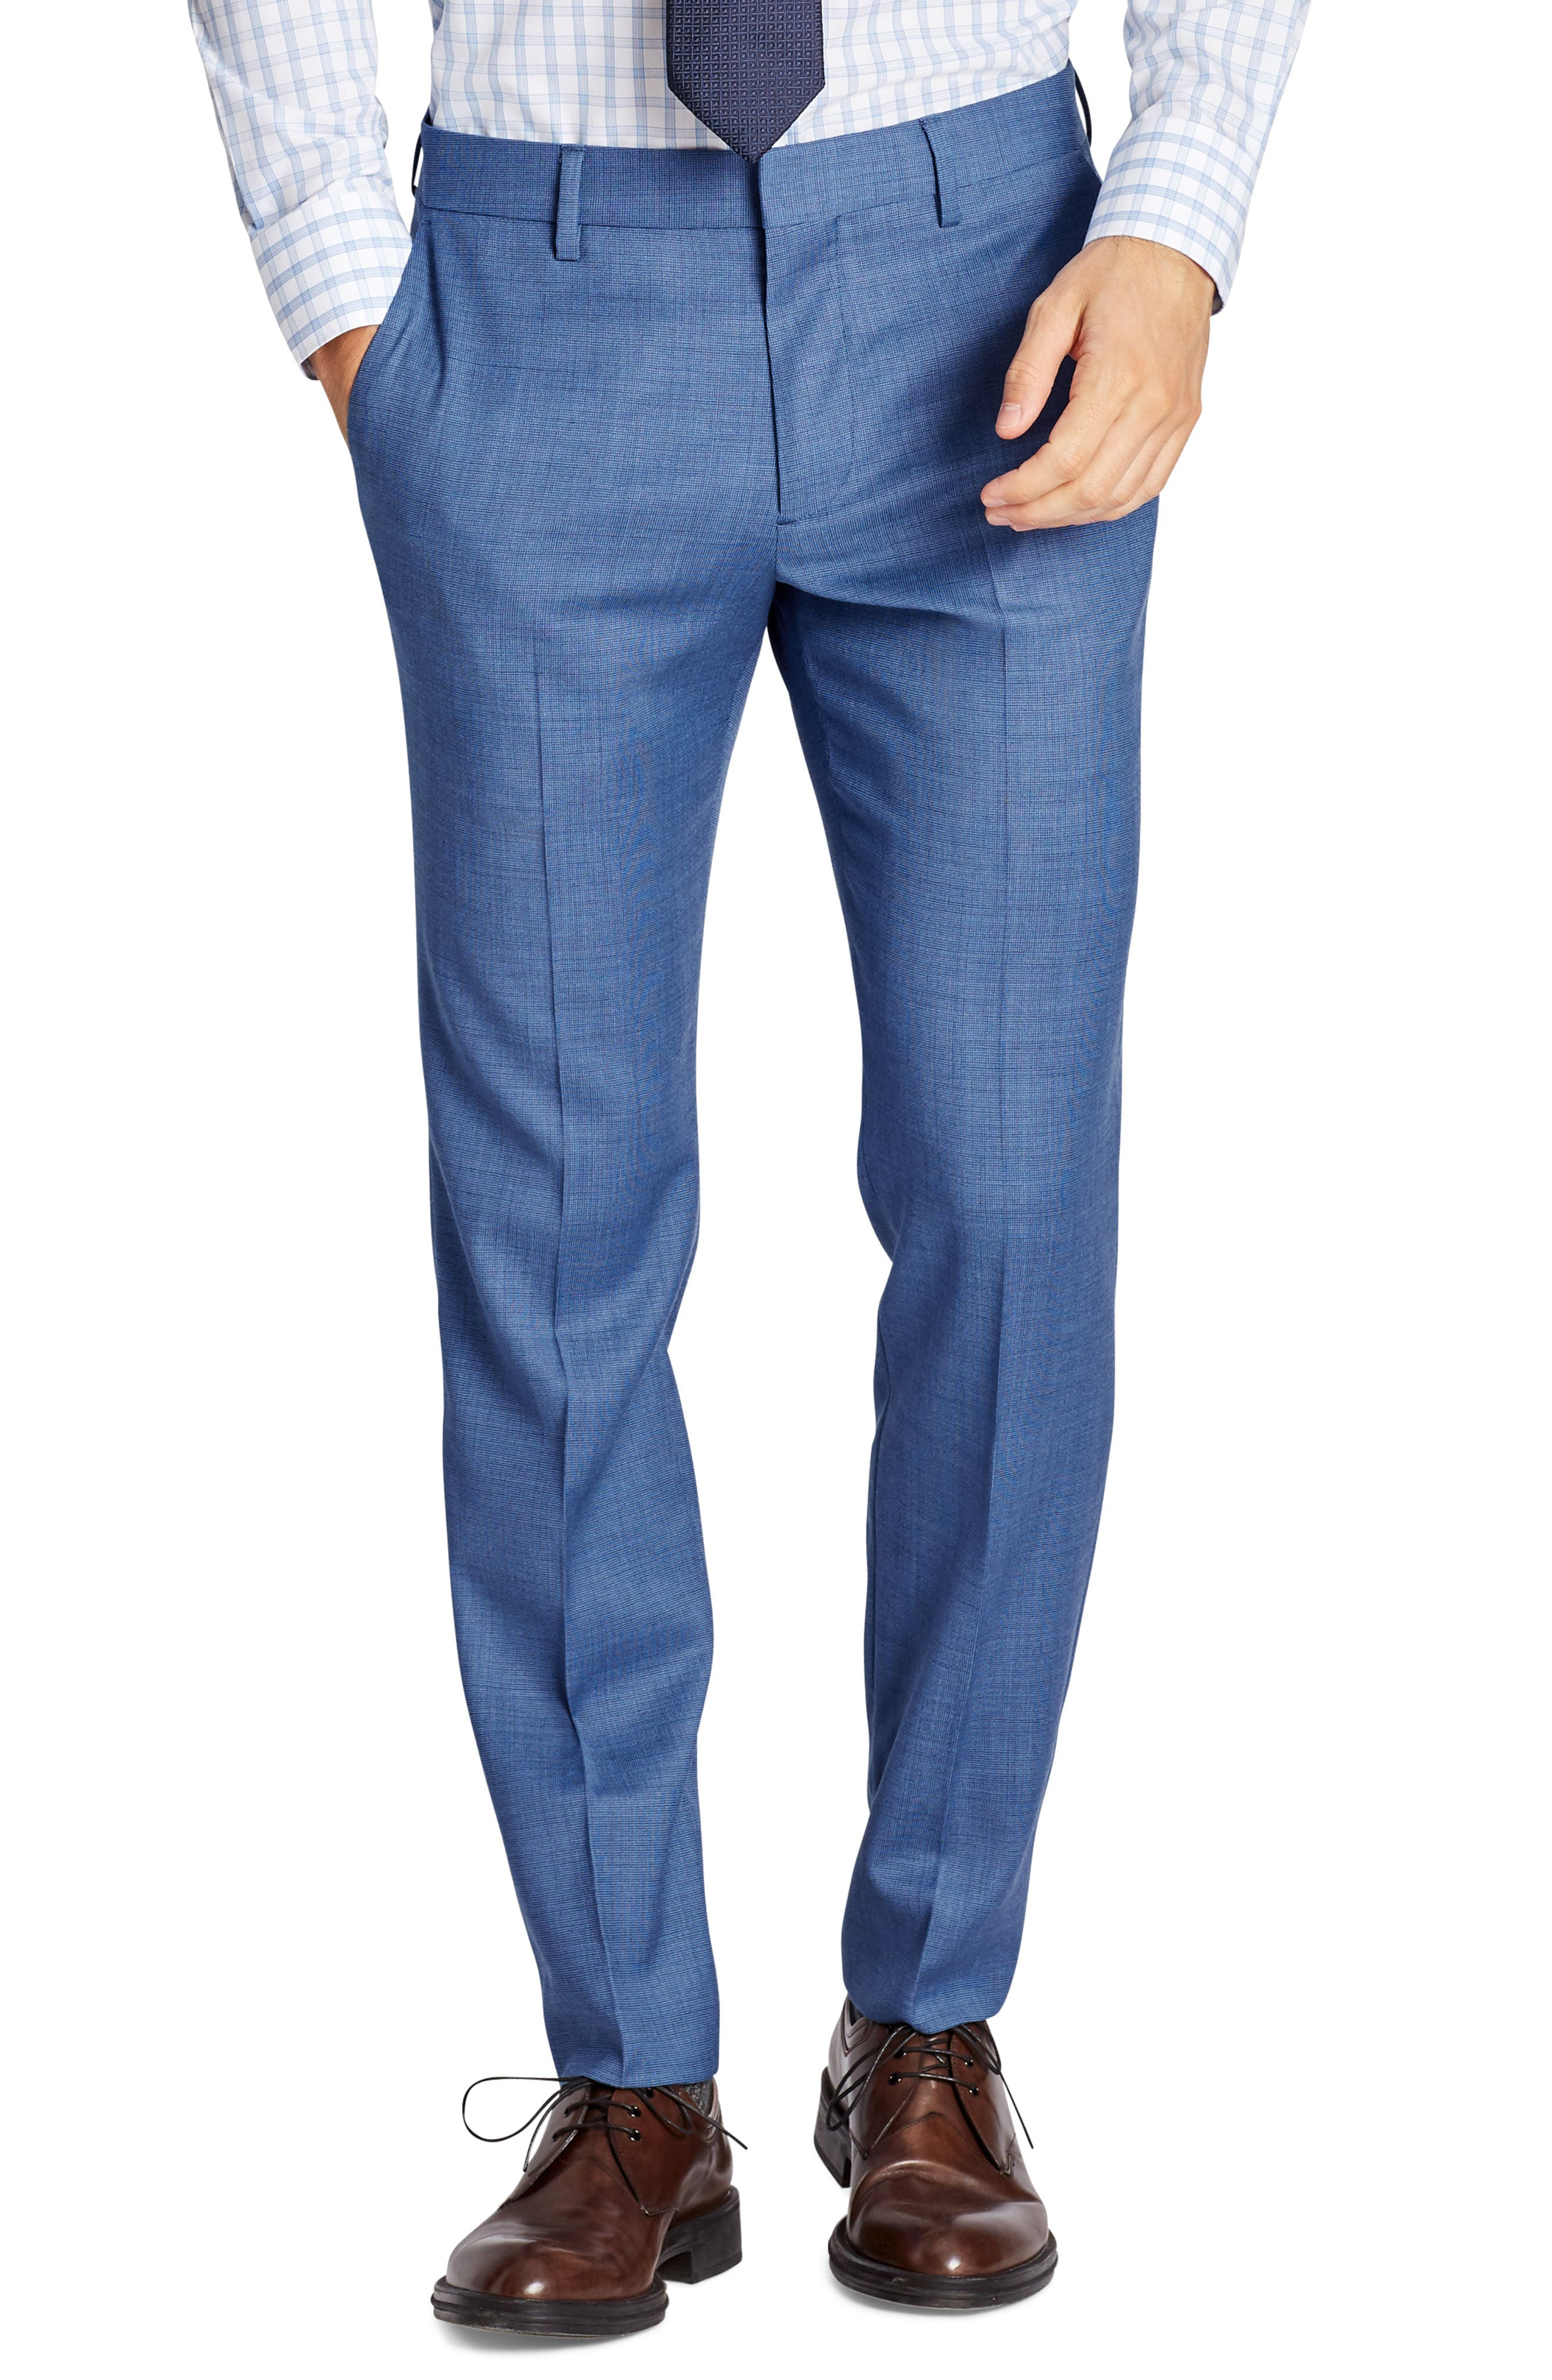 Alternate Image 1 Selected - Bonobos Jetsetter Flat Front Solid Stretch Wool Trousers